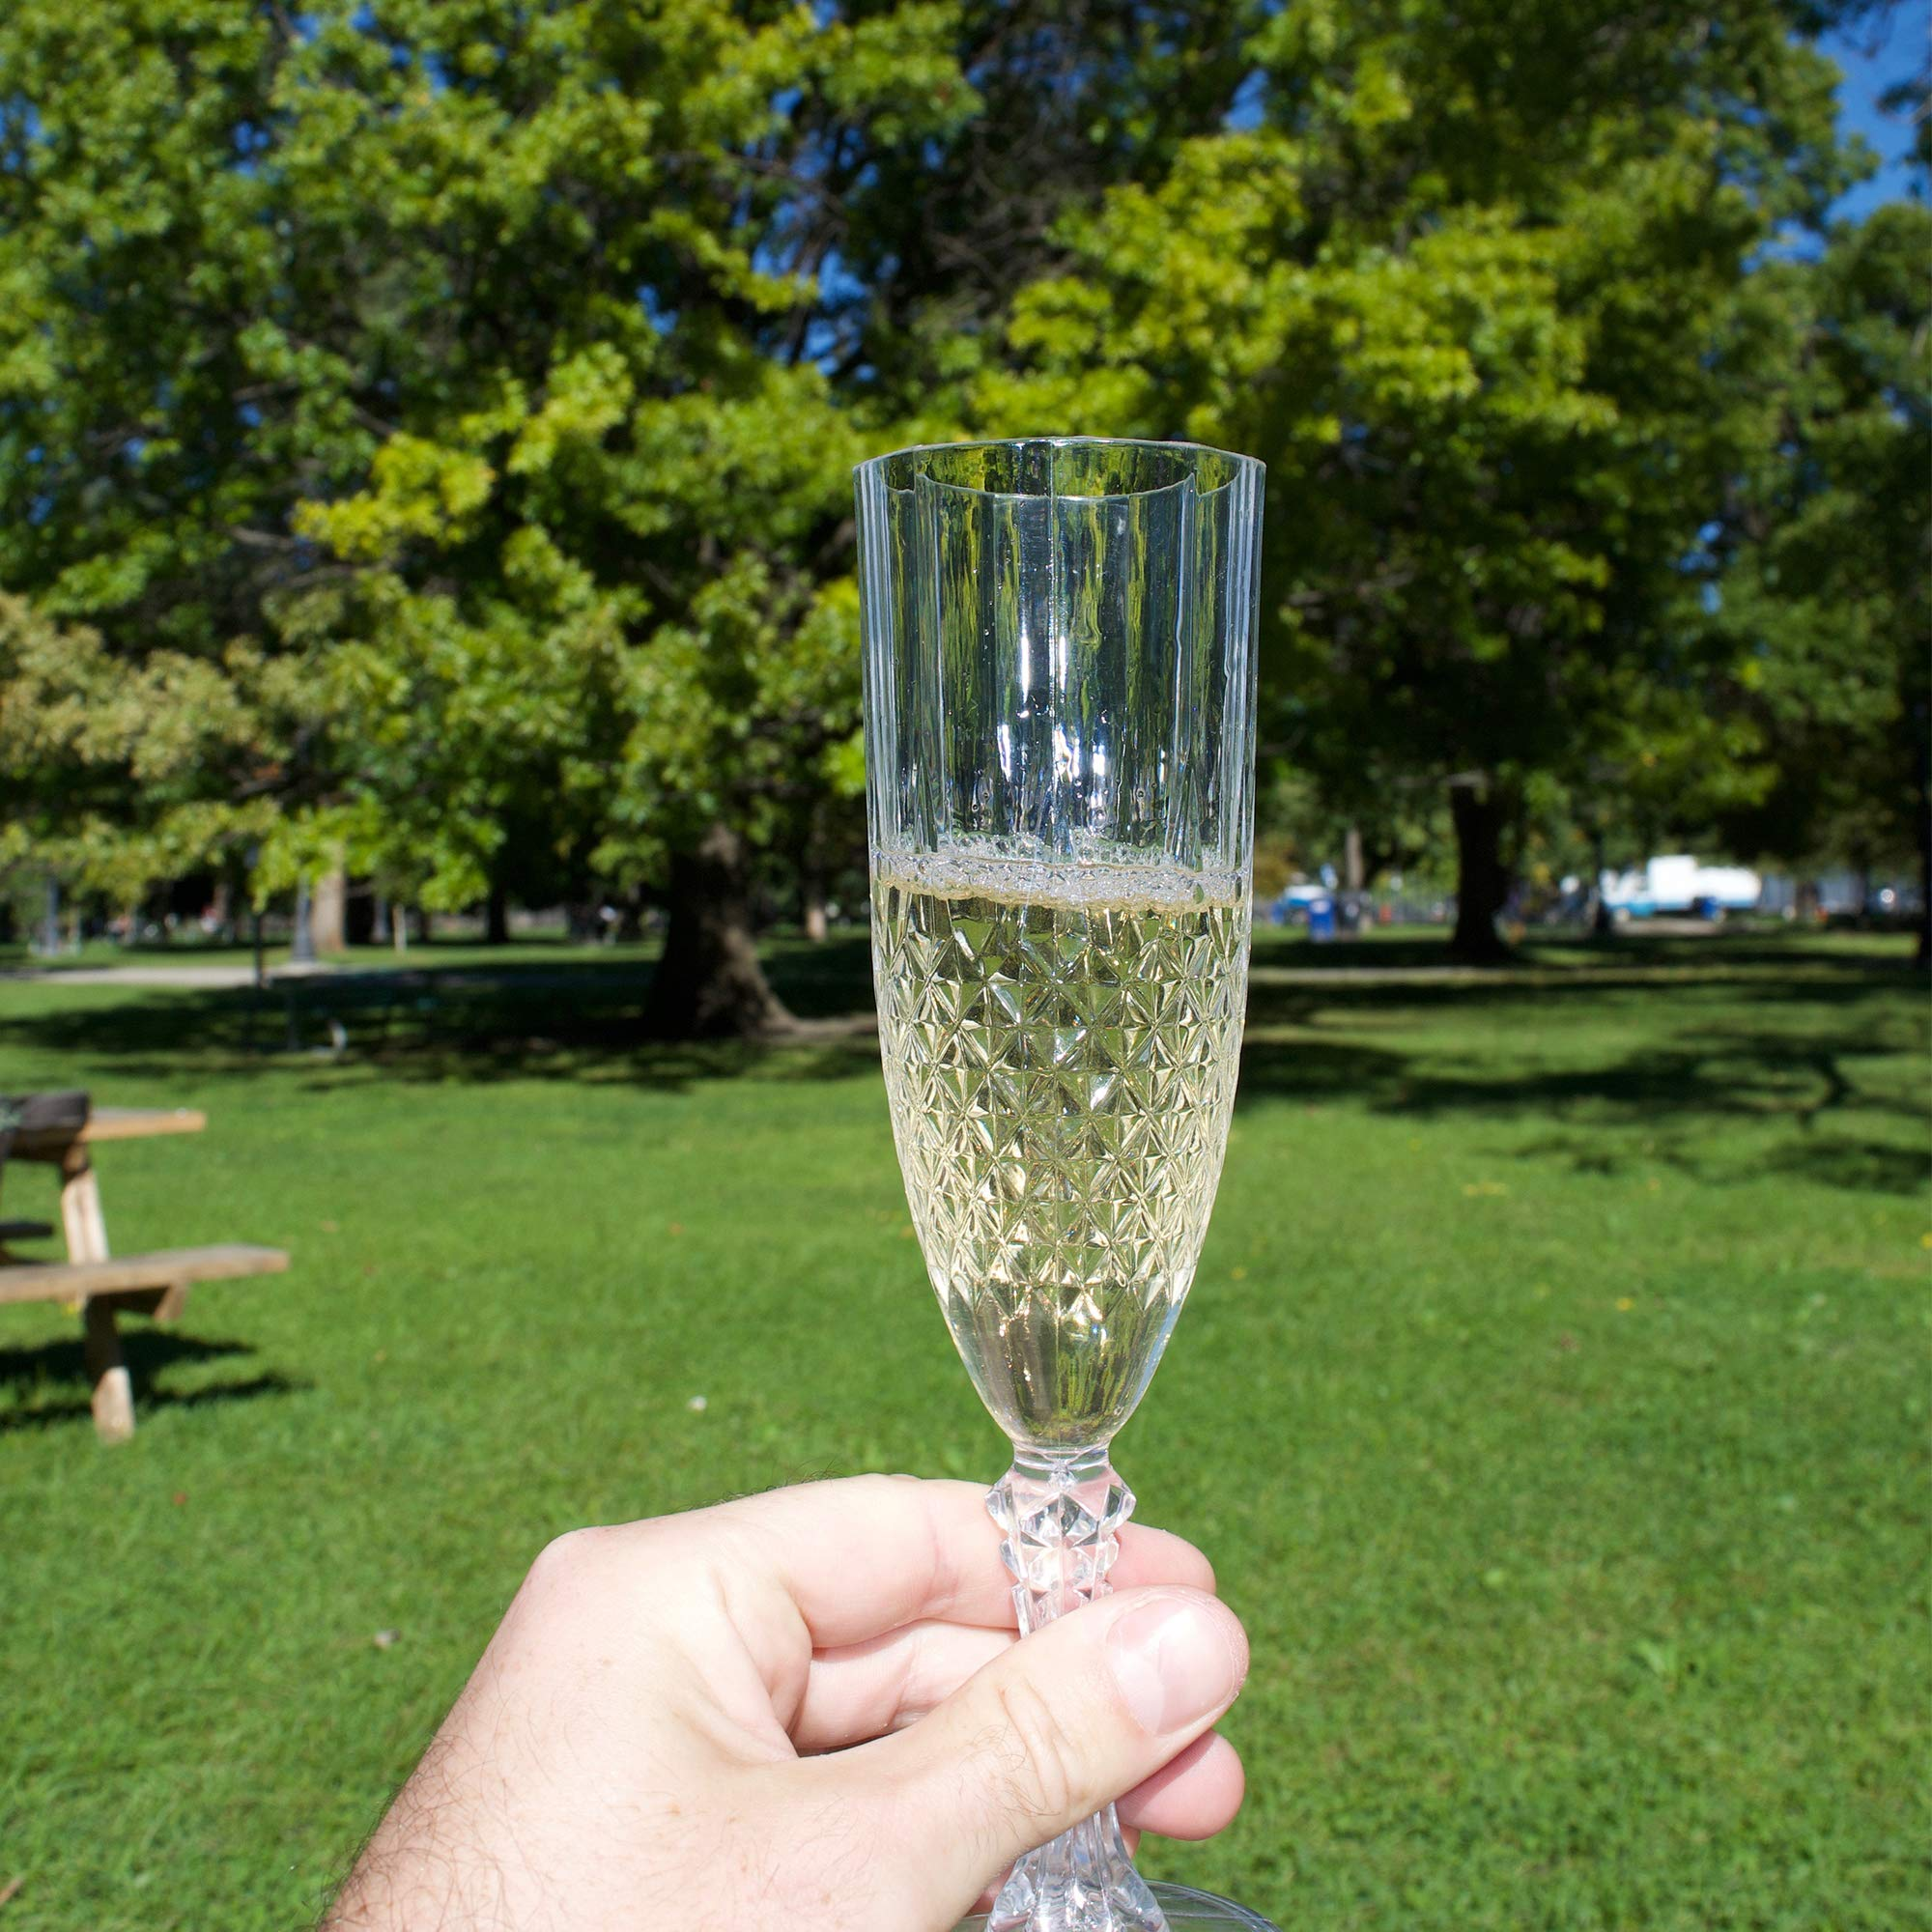 SOLAS Clear Plastic Champagne Flutes - Set of 12 Beautifully Designed Reusable Unbreakable Shatterproof Acrylic Disposable Champagne Glasses   Classic Design/Cut 8oz Plastic Champagne Glasses by SOLAS (Image #4)